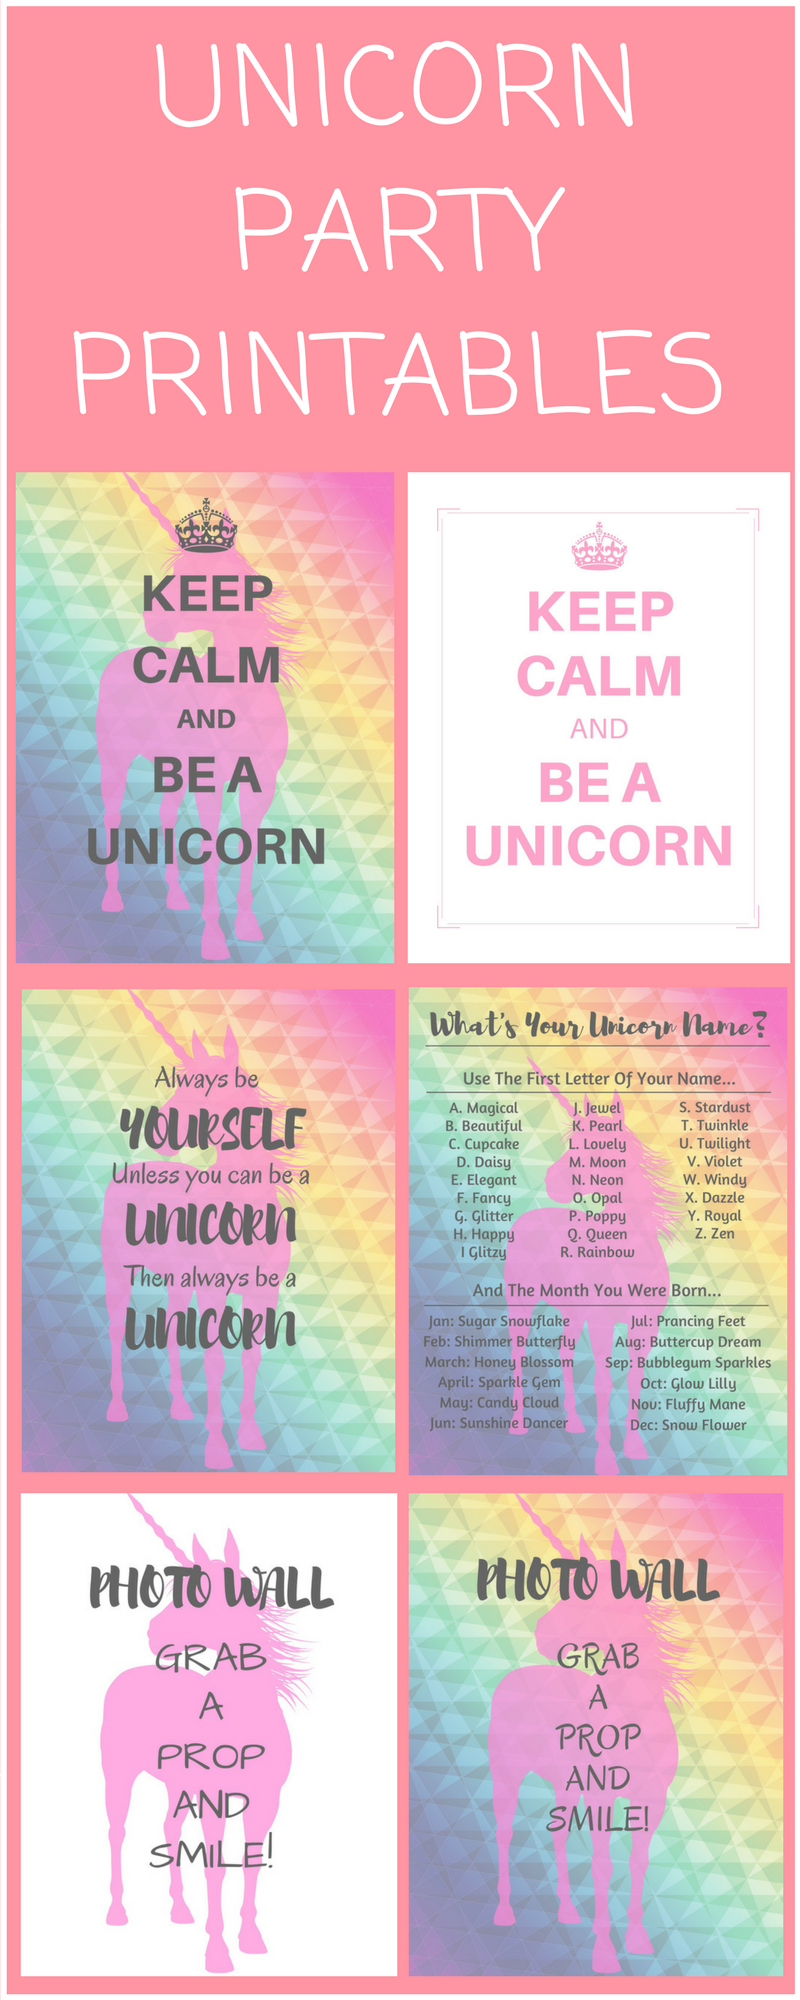 photo about Free Unicorn Name Printable titled Unicorn Birthday Get together Printables - Big Offer